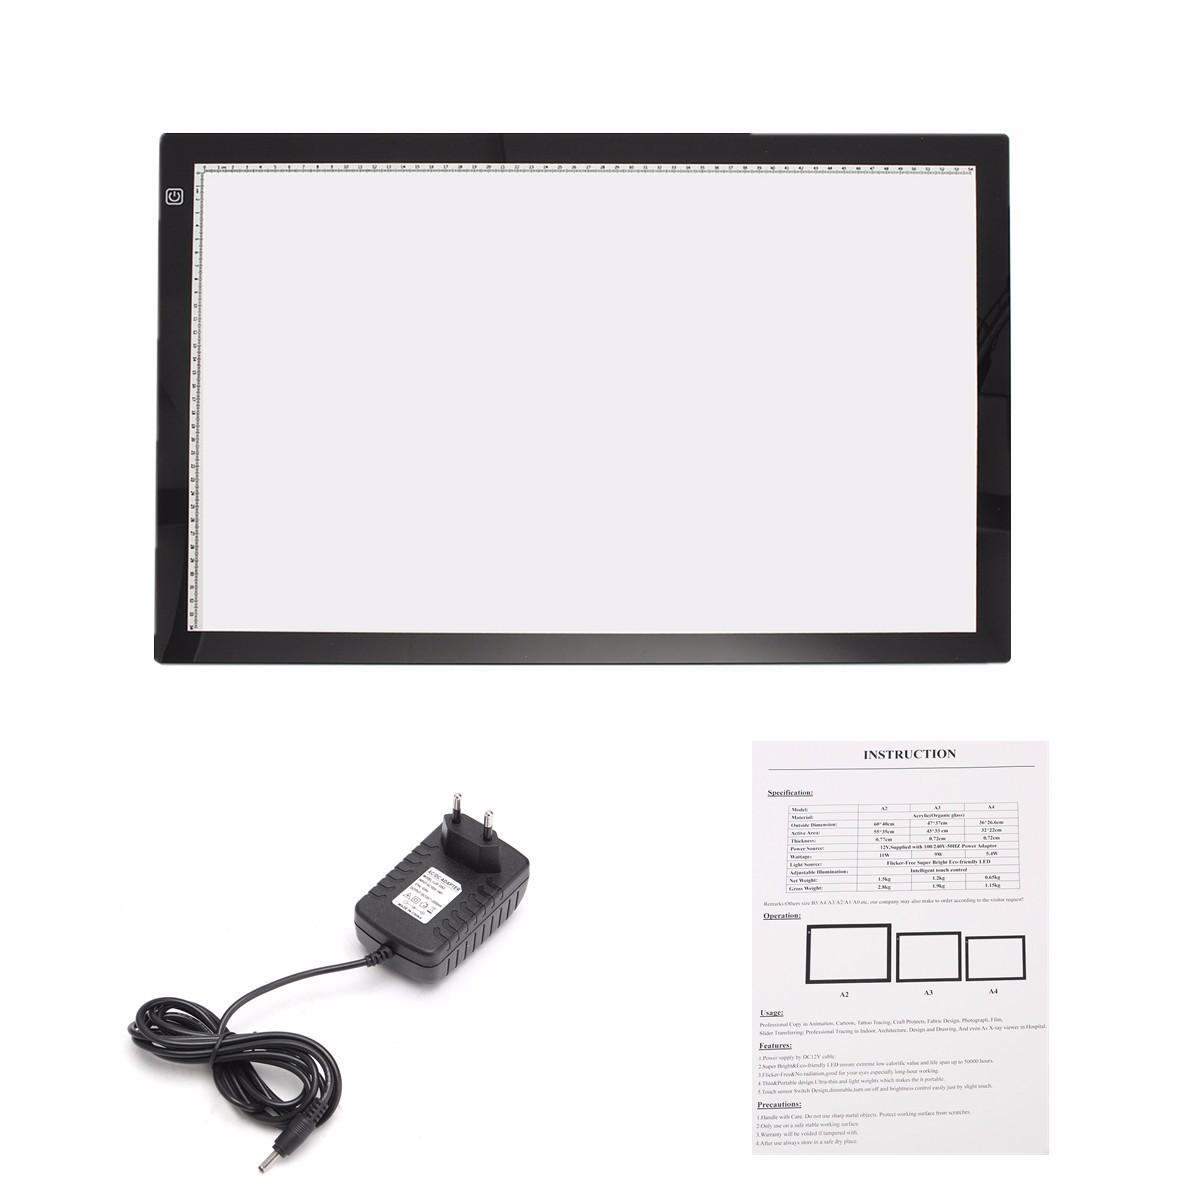 Design Dimbar A2 Dimbar Tunn Led Art Stencil Tracing Ritbord Light Pad Touch Sensor